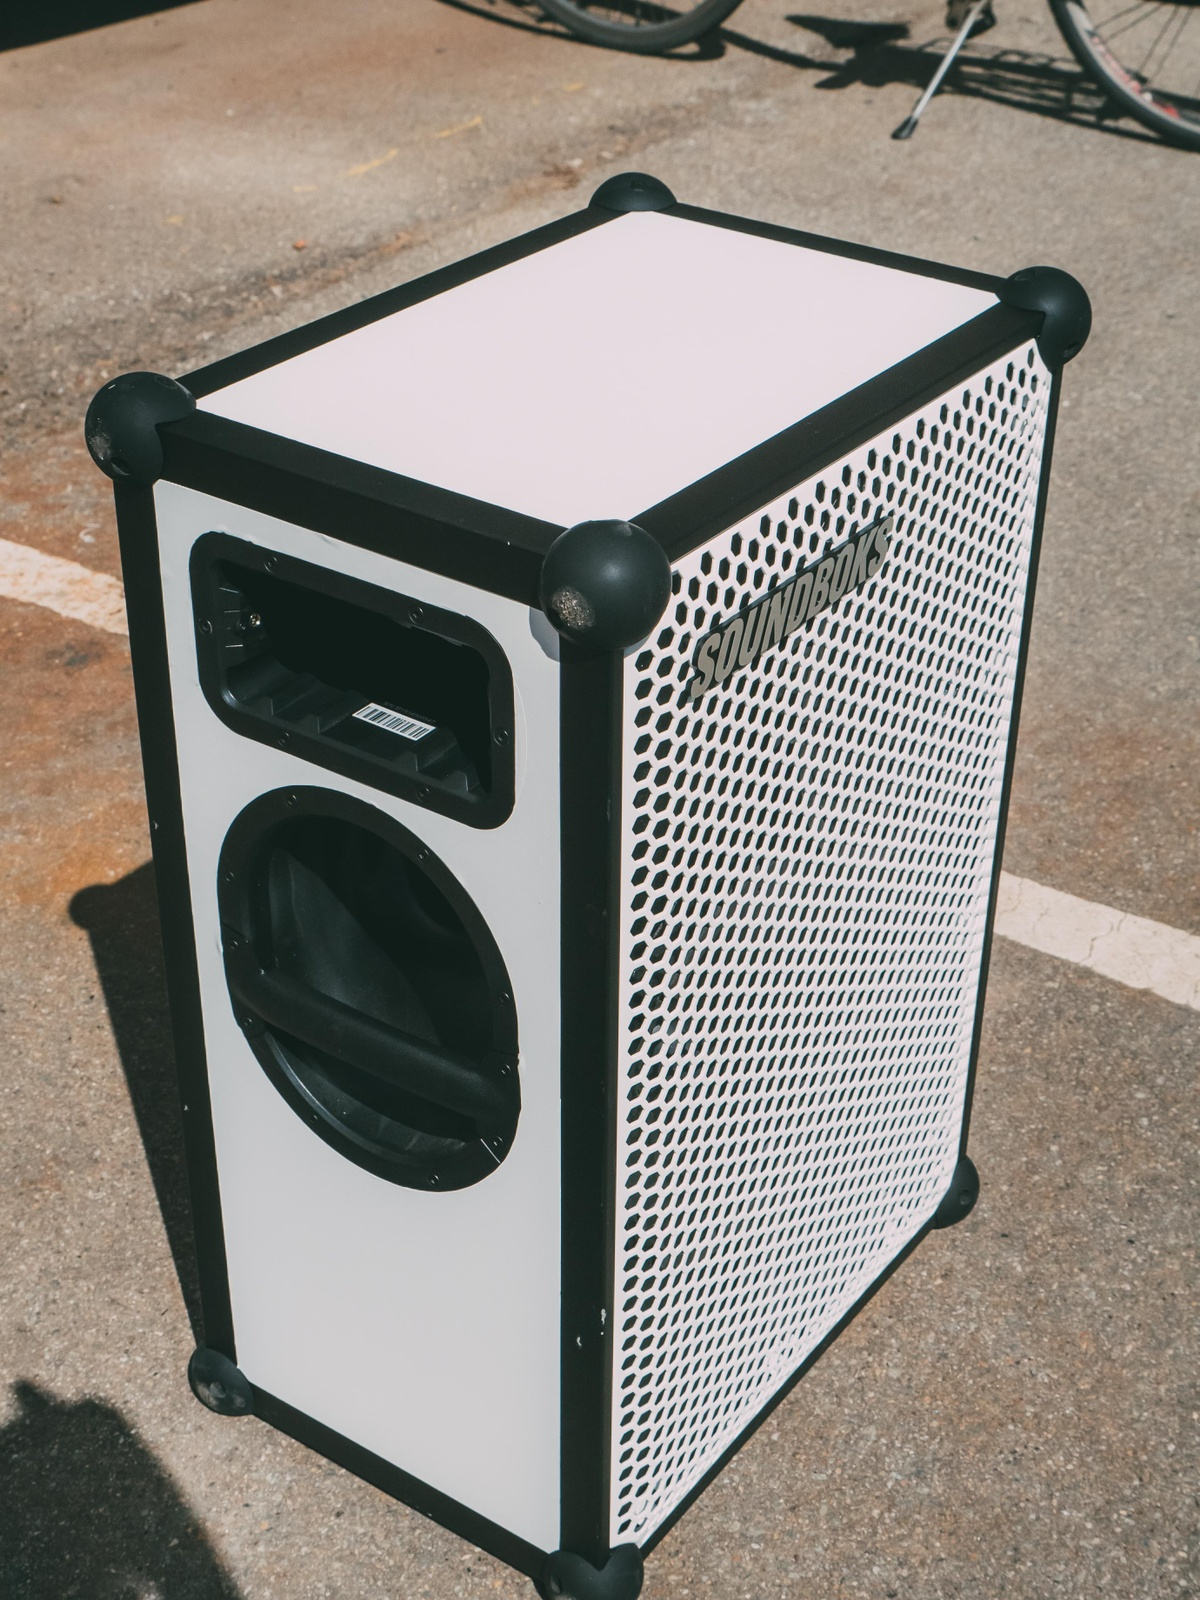 SOUNDBOKS customized with white foil and white grill